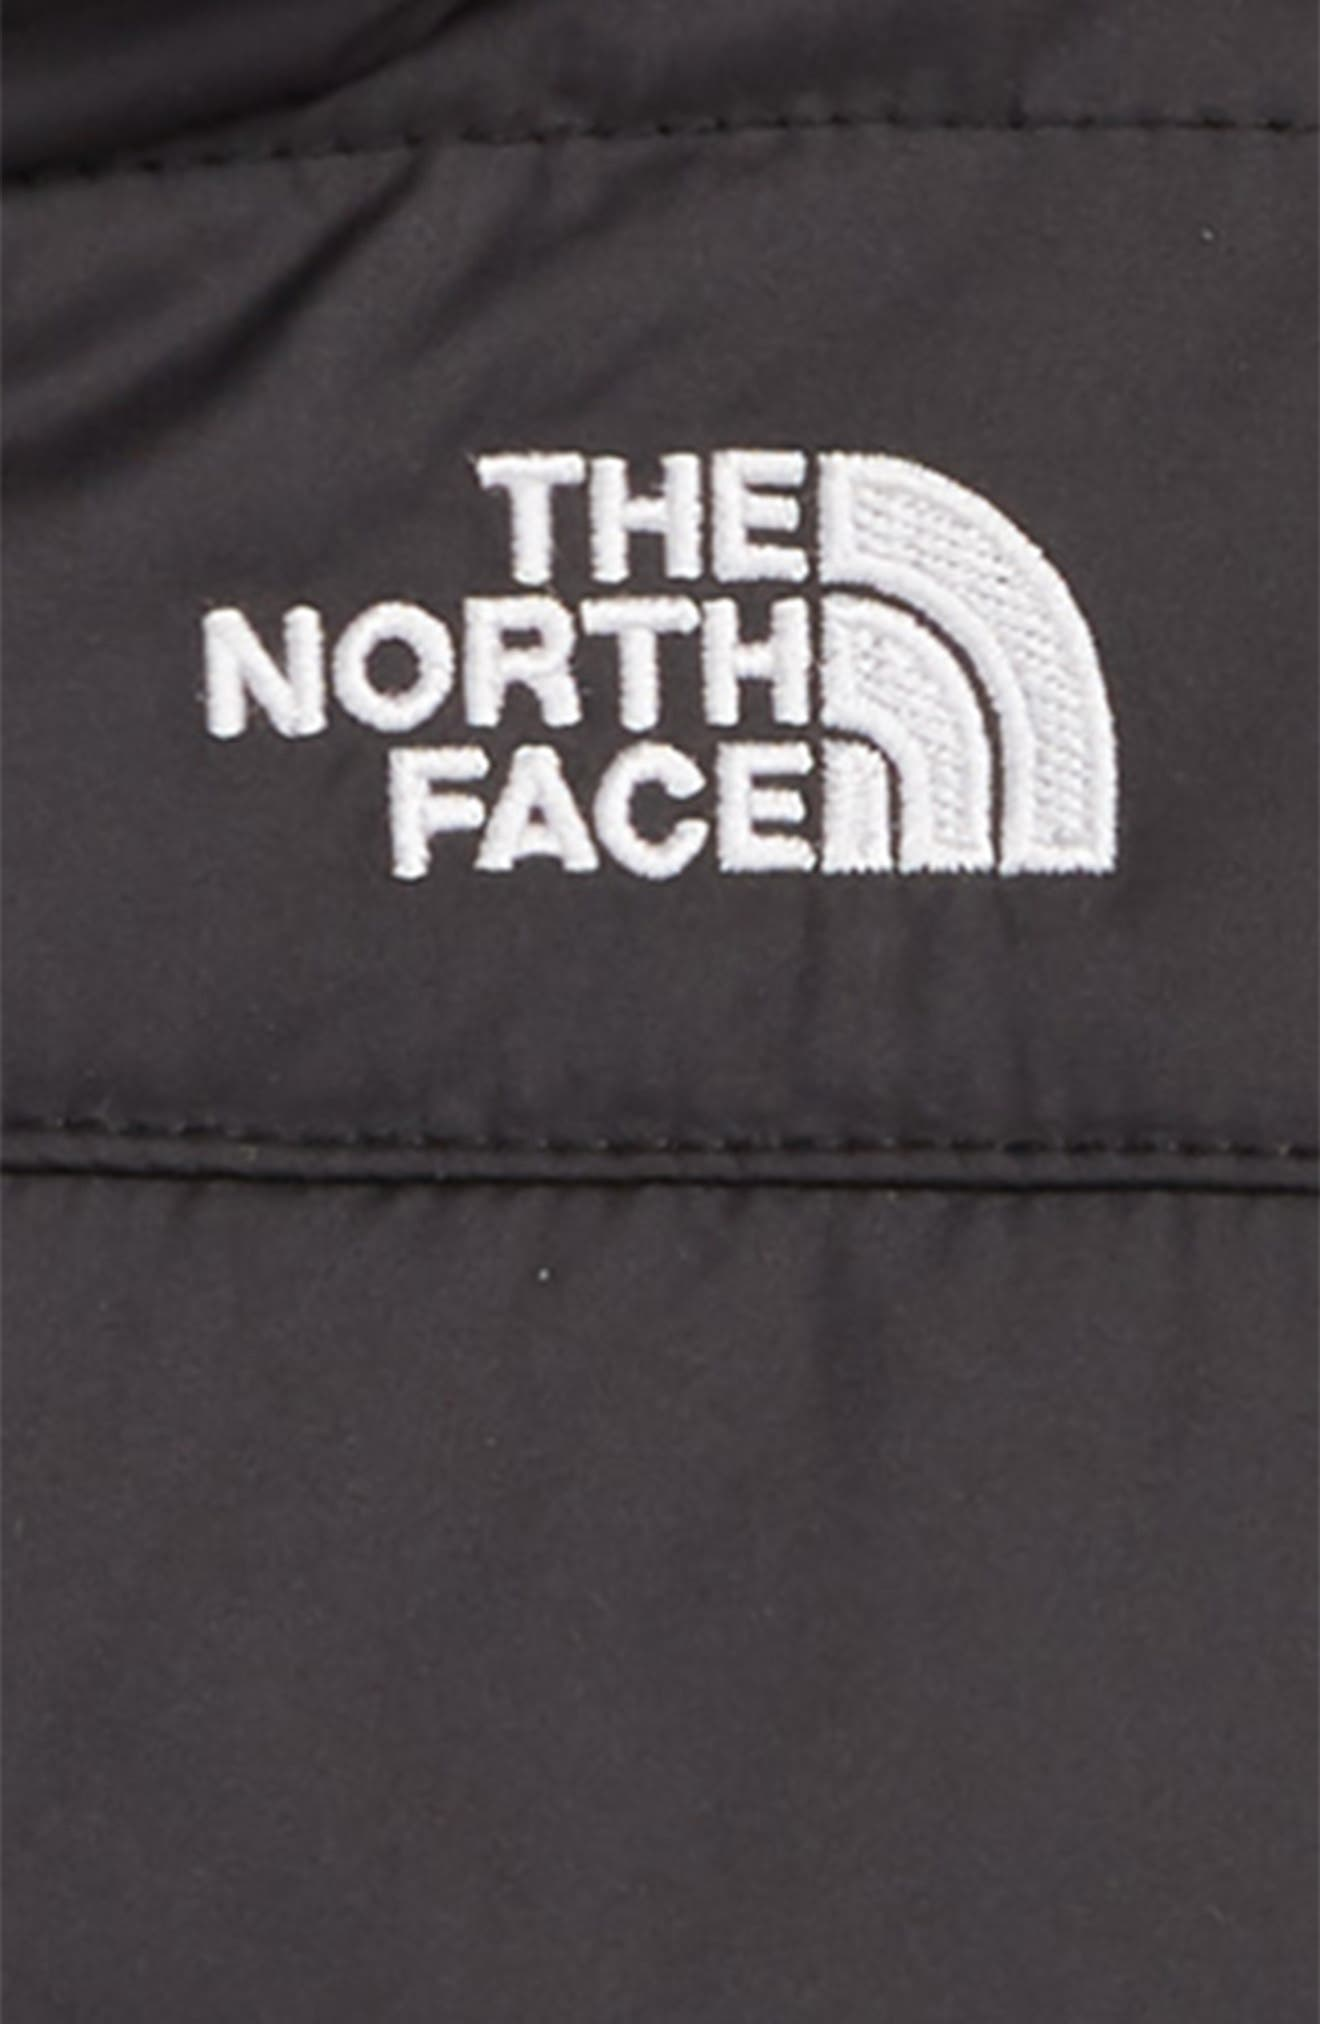 THE NORTH FACE, Mount Chimboraz Reversible Water Repellent Heatseeker<sup>™</sup> Insulated Hooded Jacket, Alternate thumbnail 3, color, 001